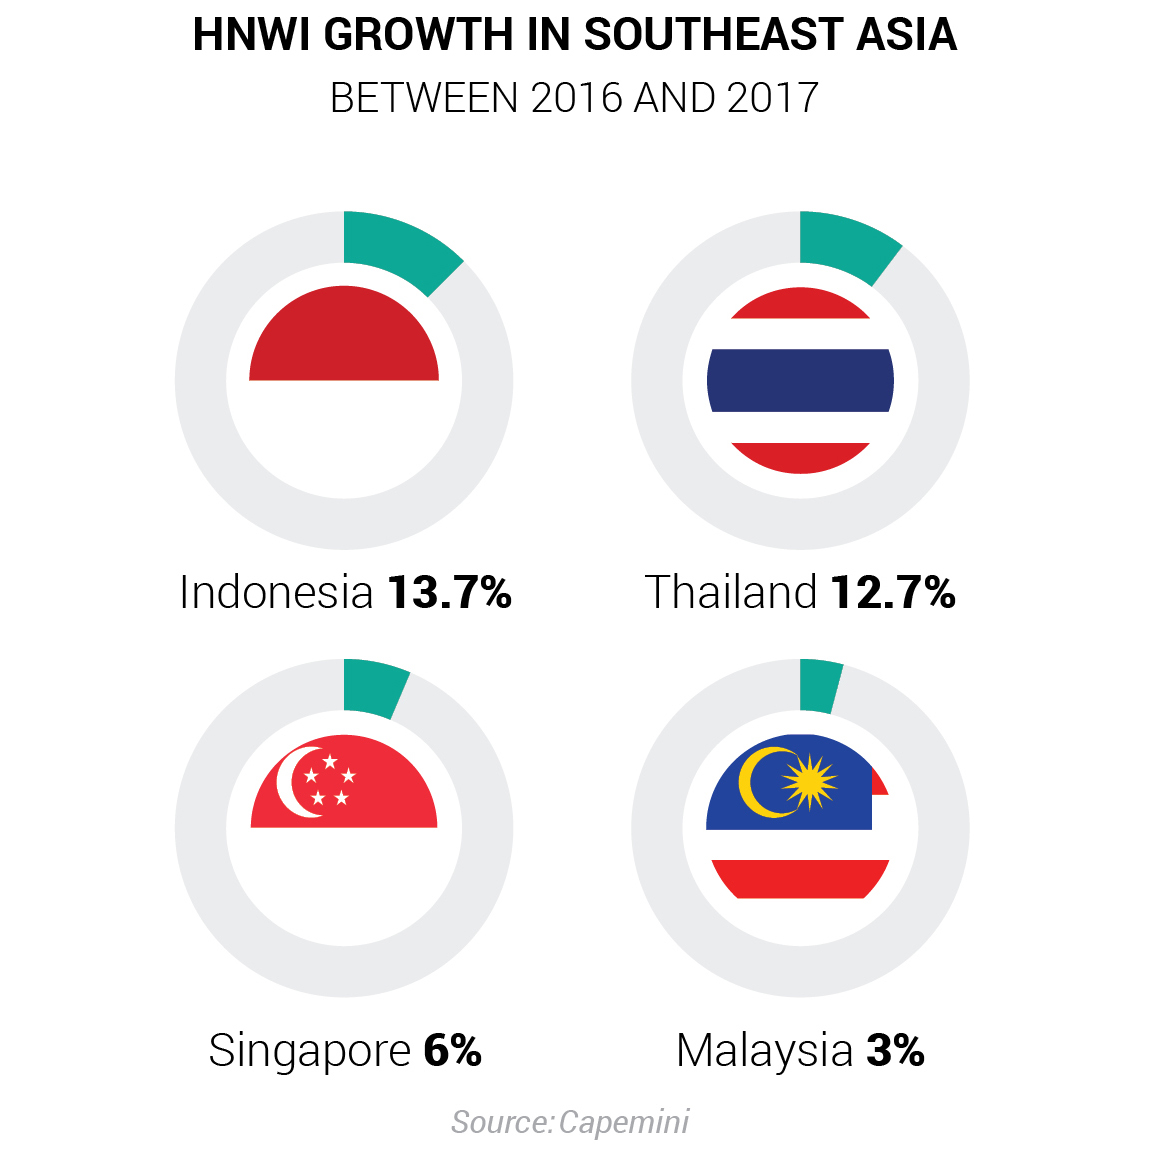 HNWI growth in Southeast Asia